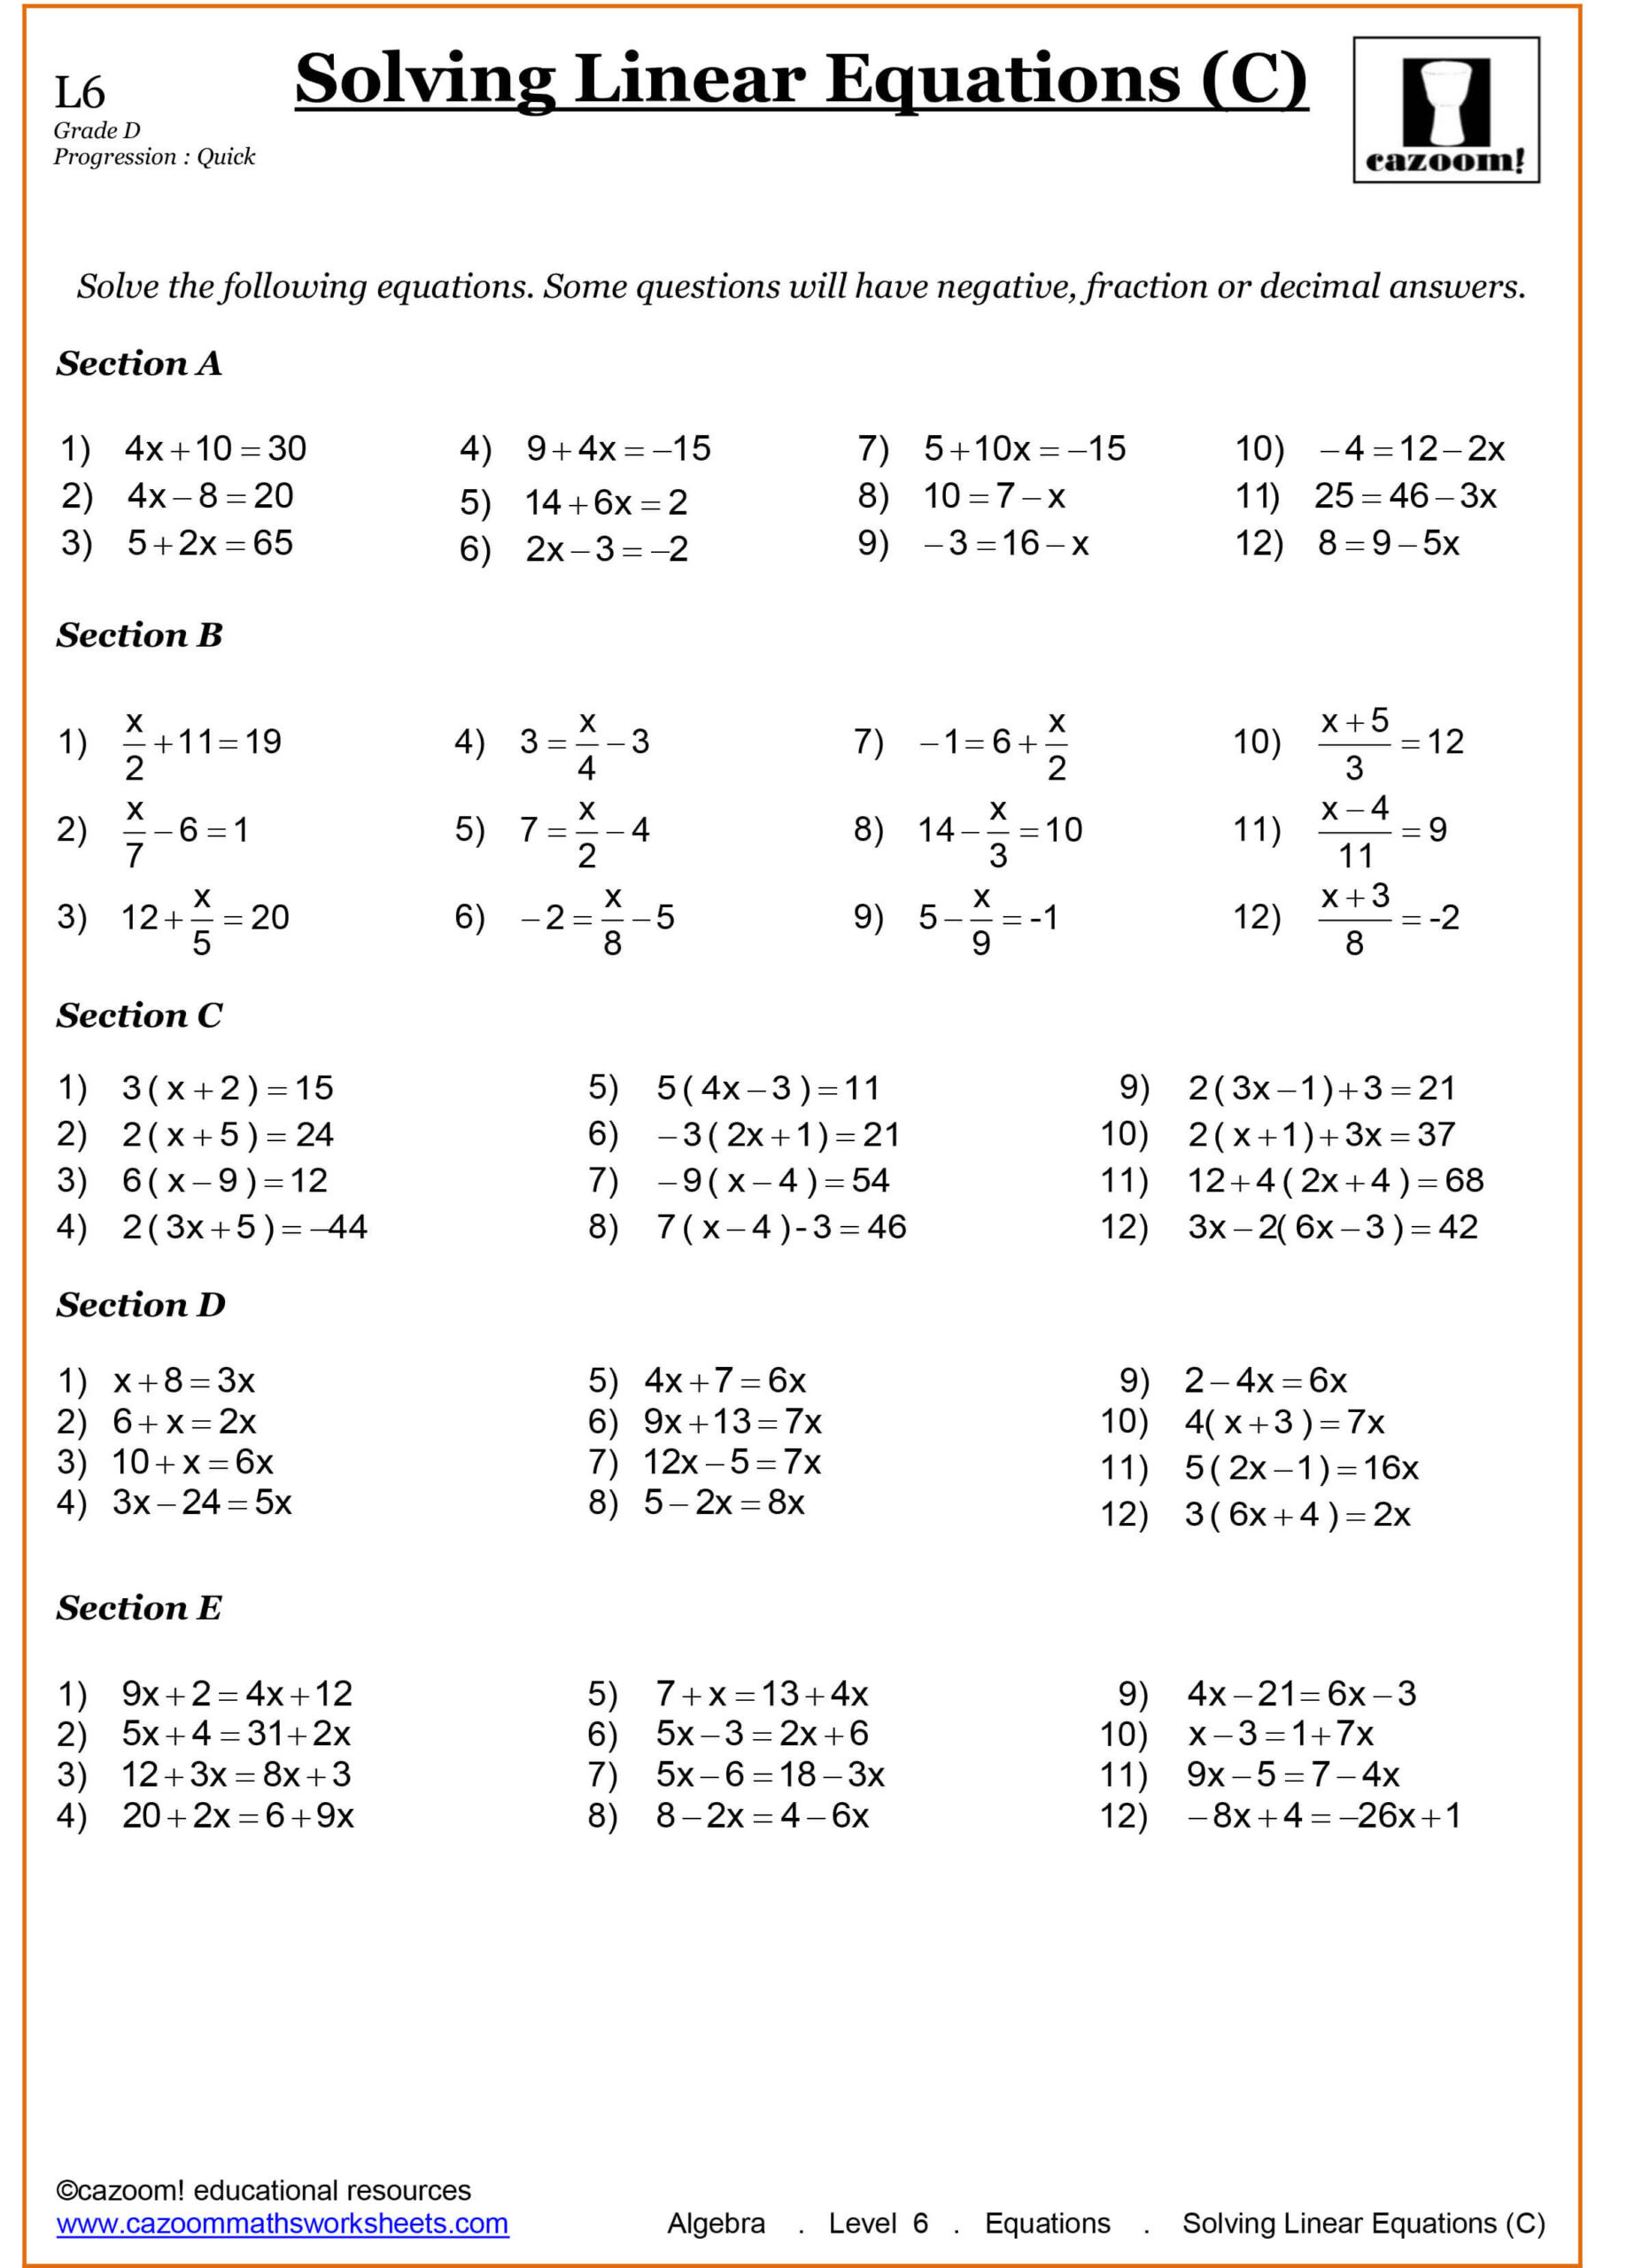 10th Grade Math Worksheets 1989 Generationinitiative Page 5 Free Printable Math